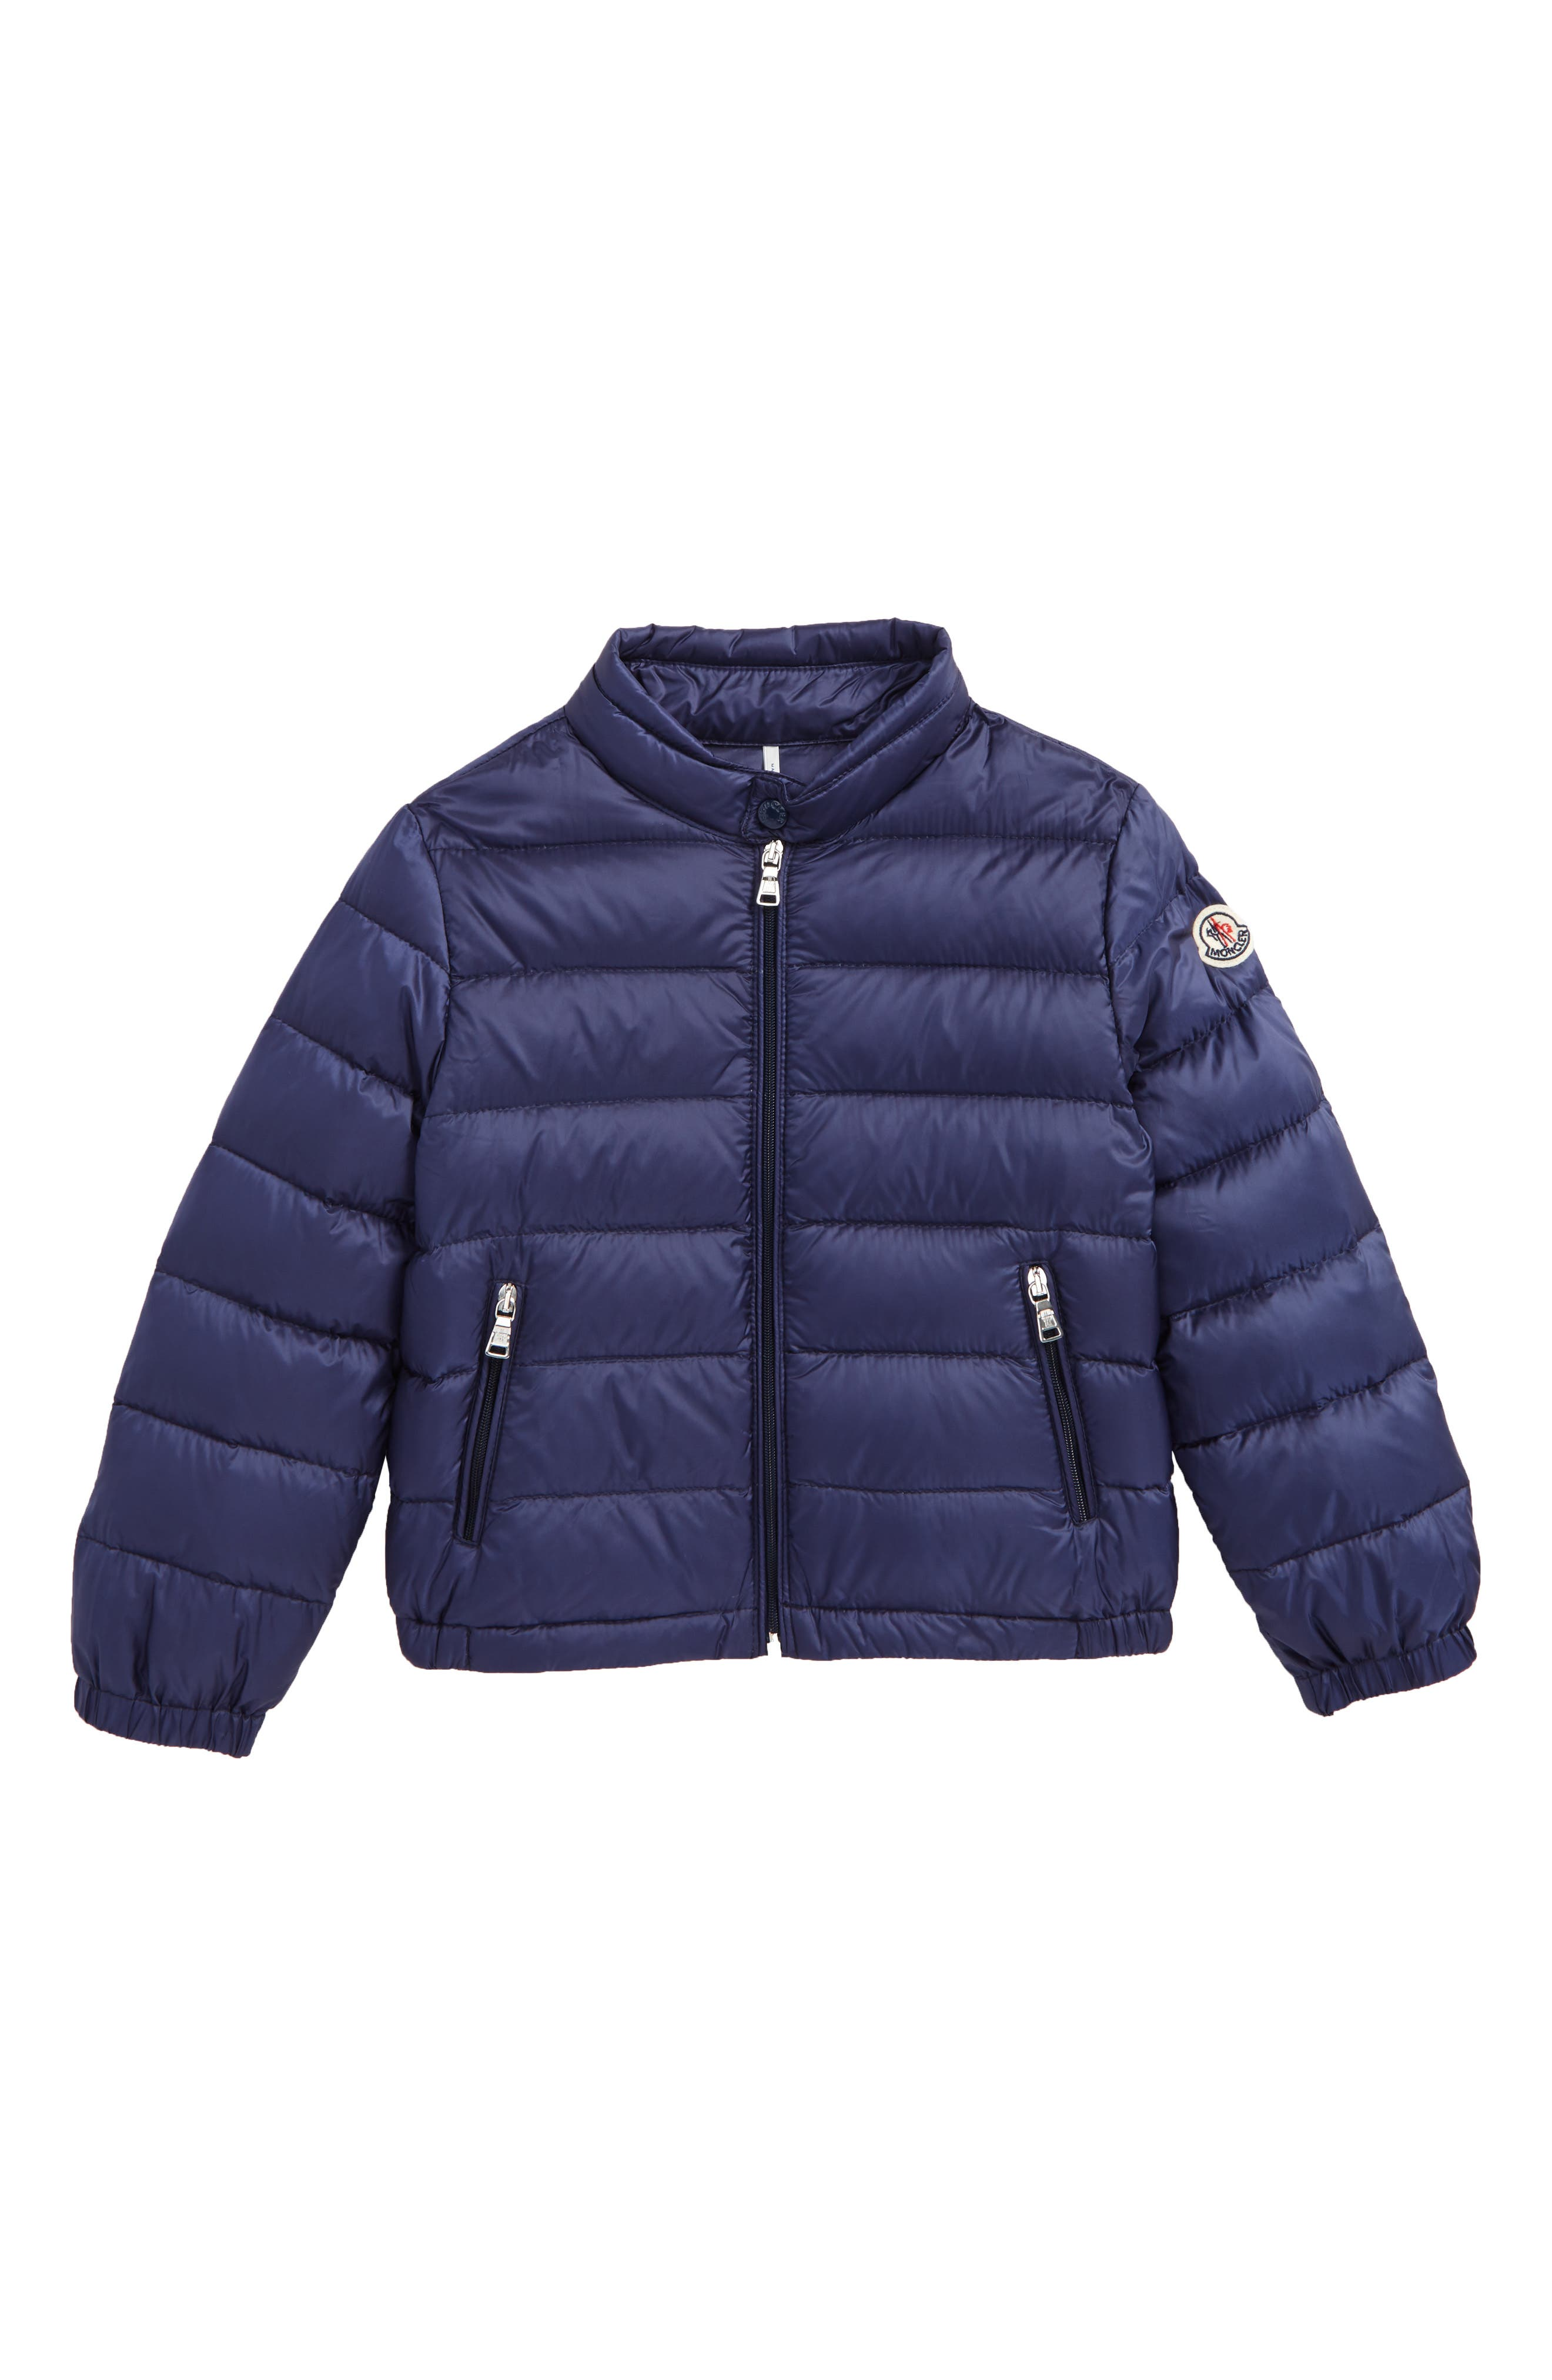 Alternate Image 1 Selected - Moncler Quilted Down Jacket (Baby Boys & Toddler Boys)